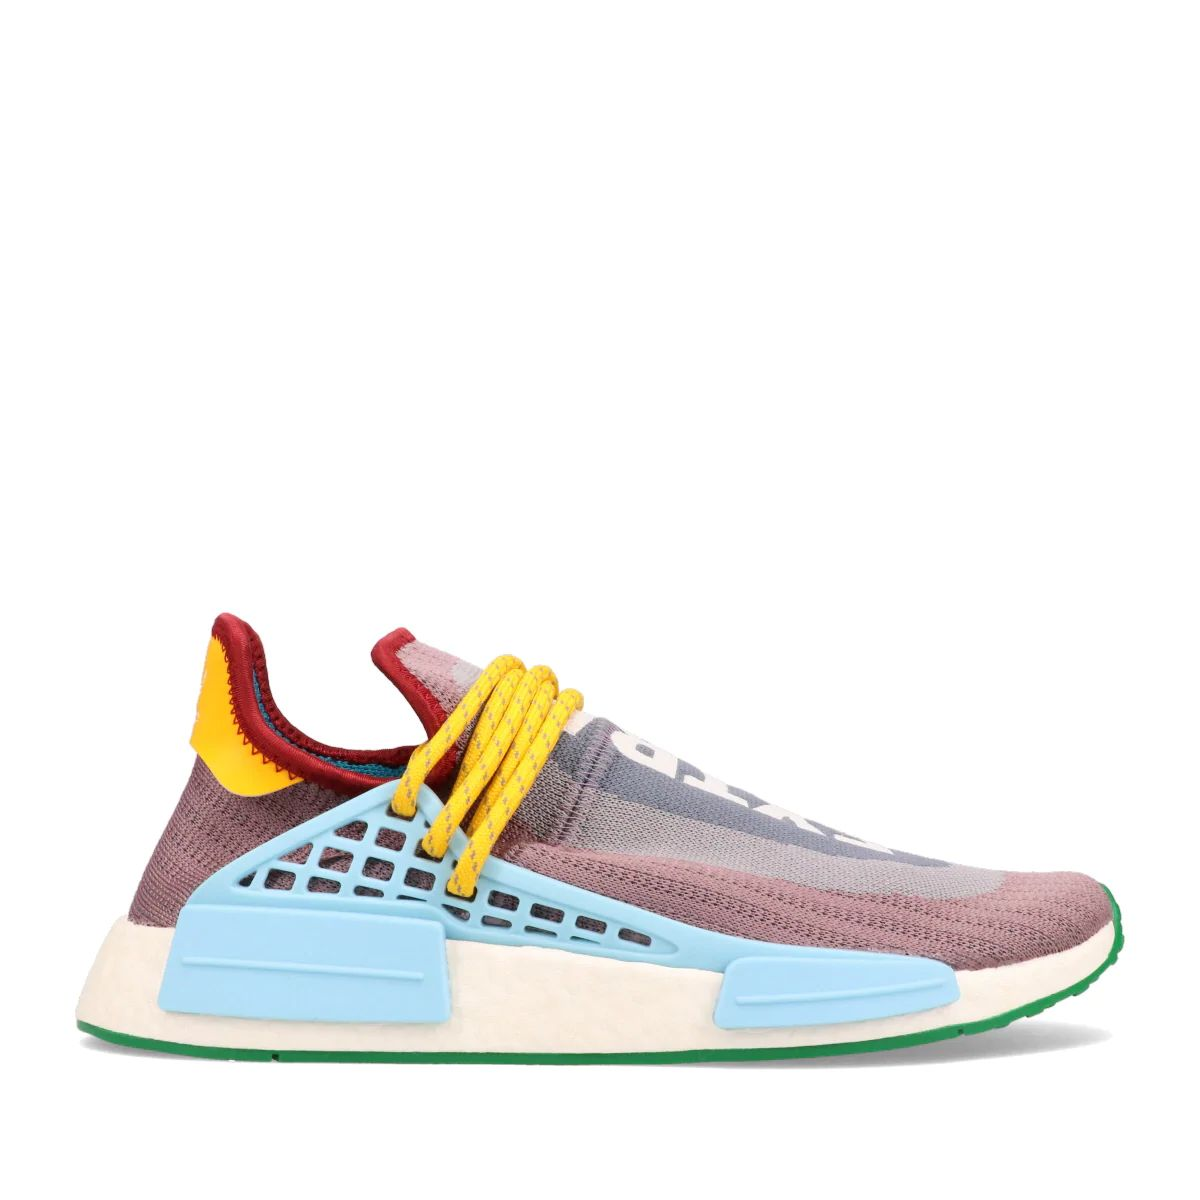 pharrell-williams-adidas-nmd-huuman-race-extra-eye-release-20201002